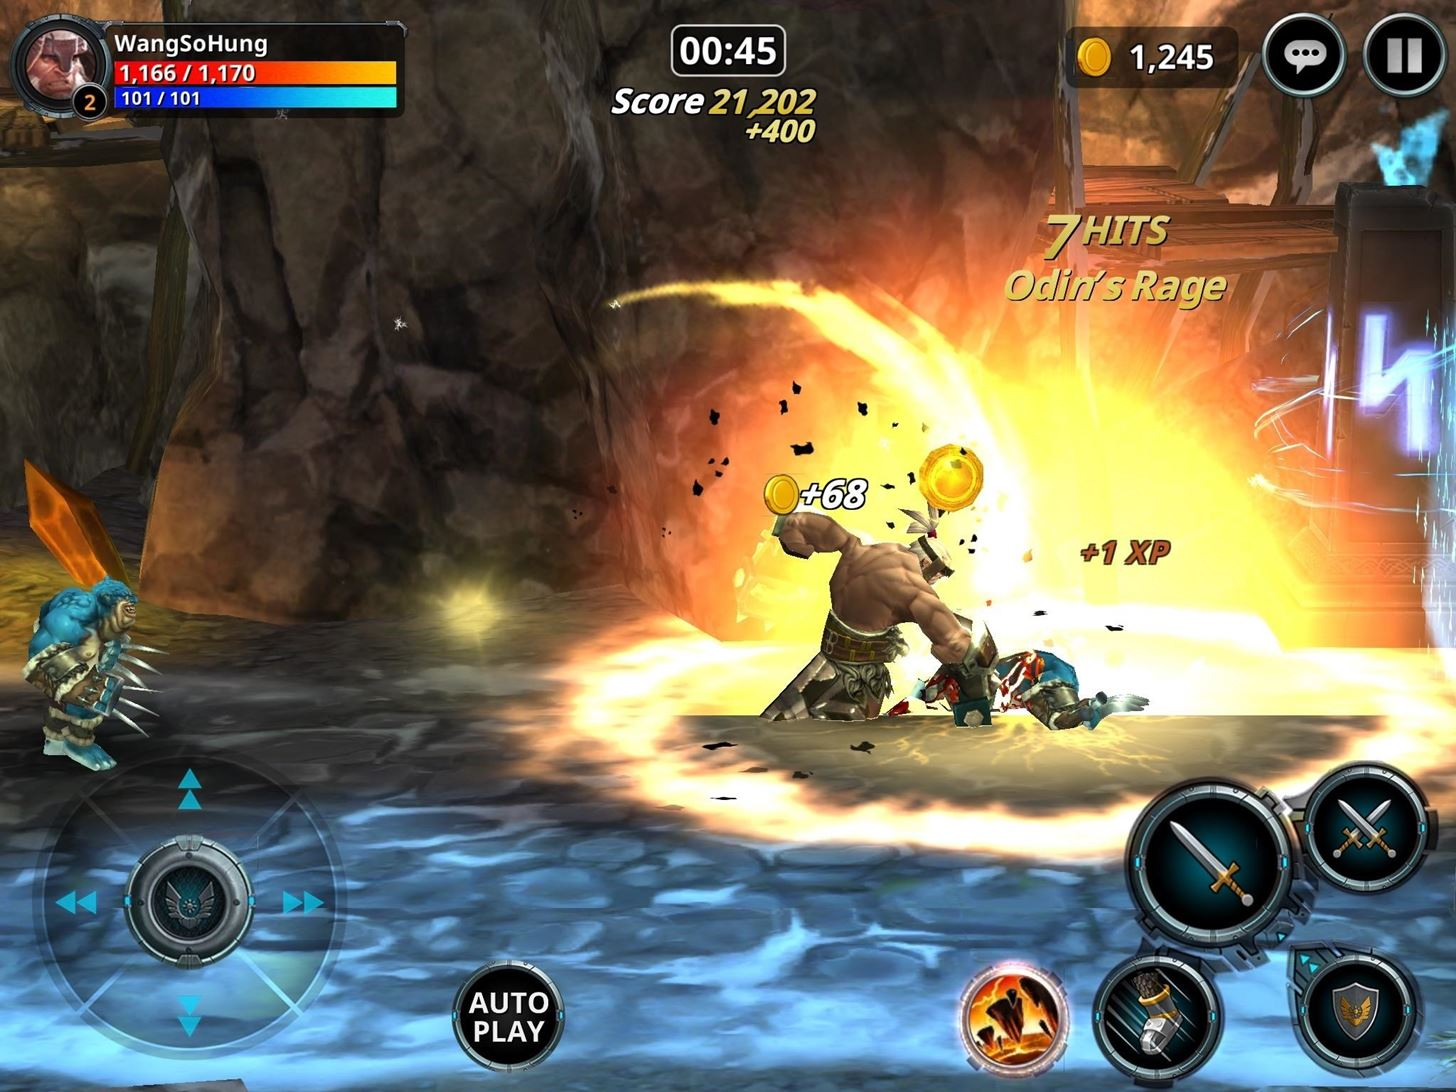 Play ChronoBlade on Your iPhone or Android Before Its Official Release